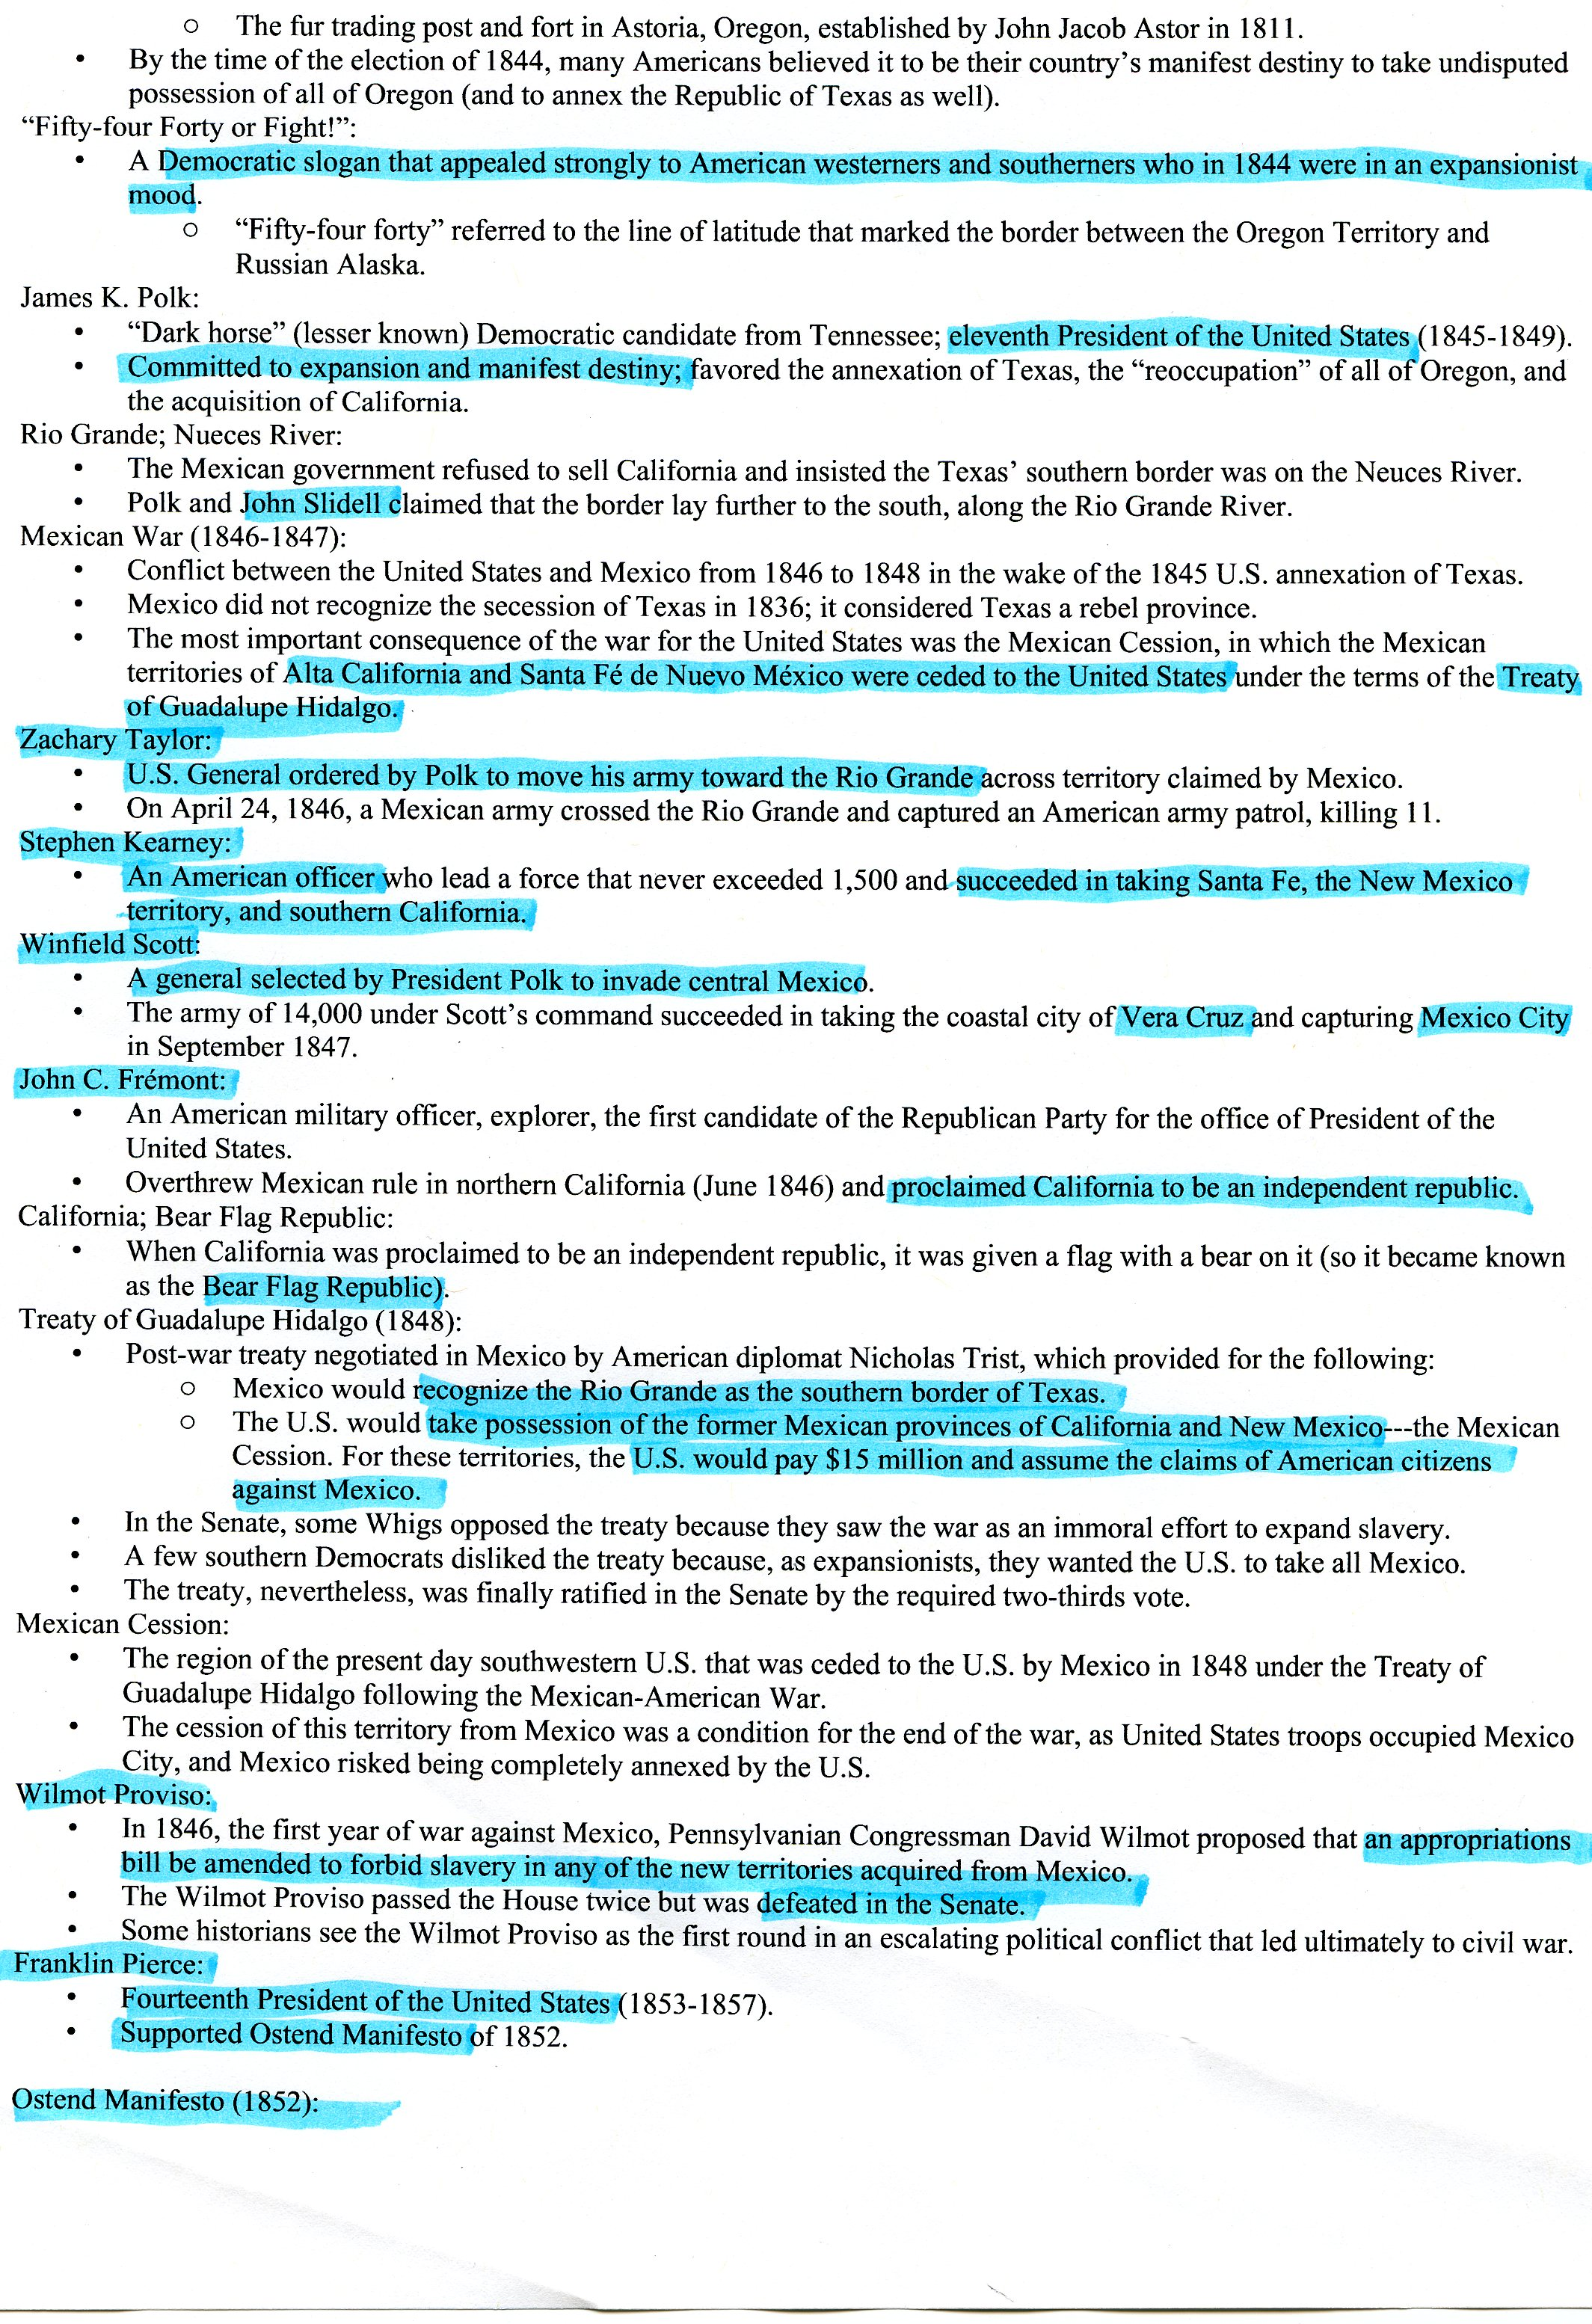 008 Essay Example Manifest Destiny Apush Essays Free Titles On Questions About Megaessays Com Prompt Conclusion Hook Outline Pro Over Impressive Introduction Full